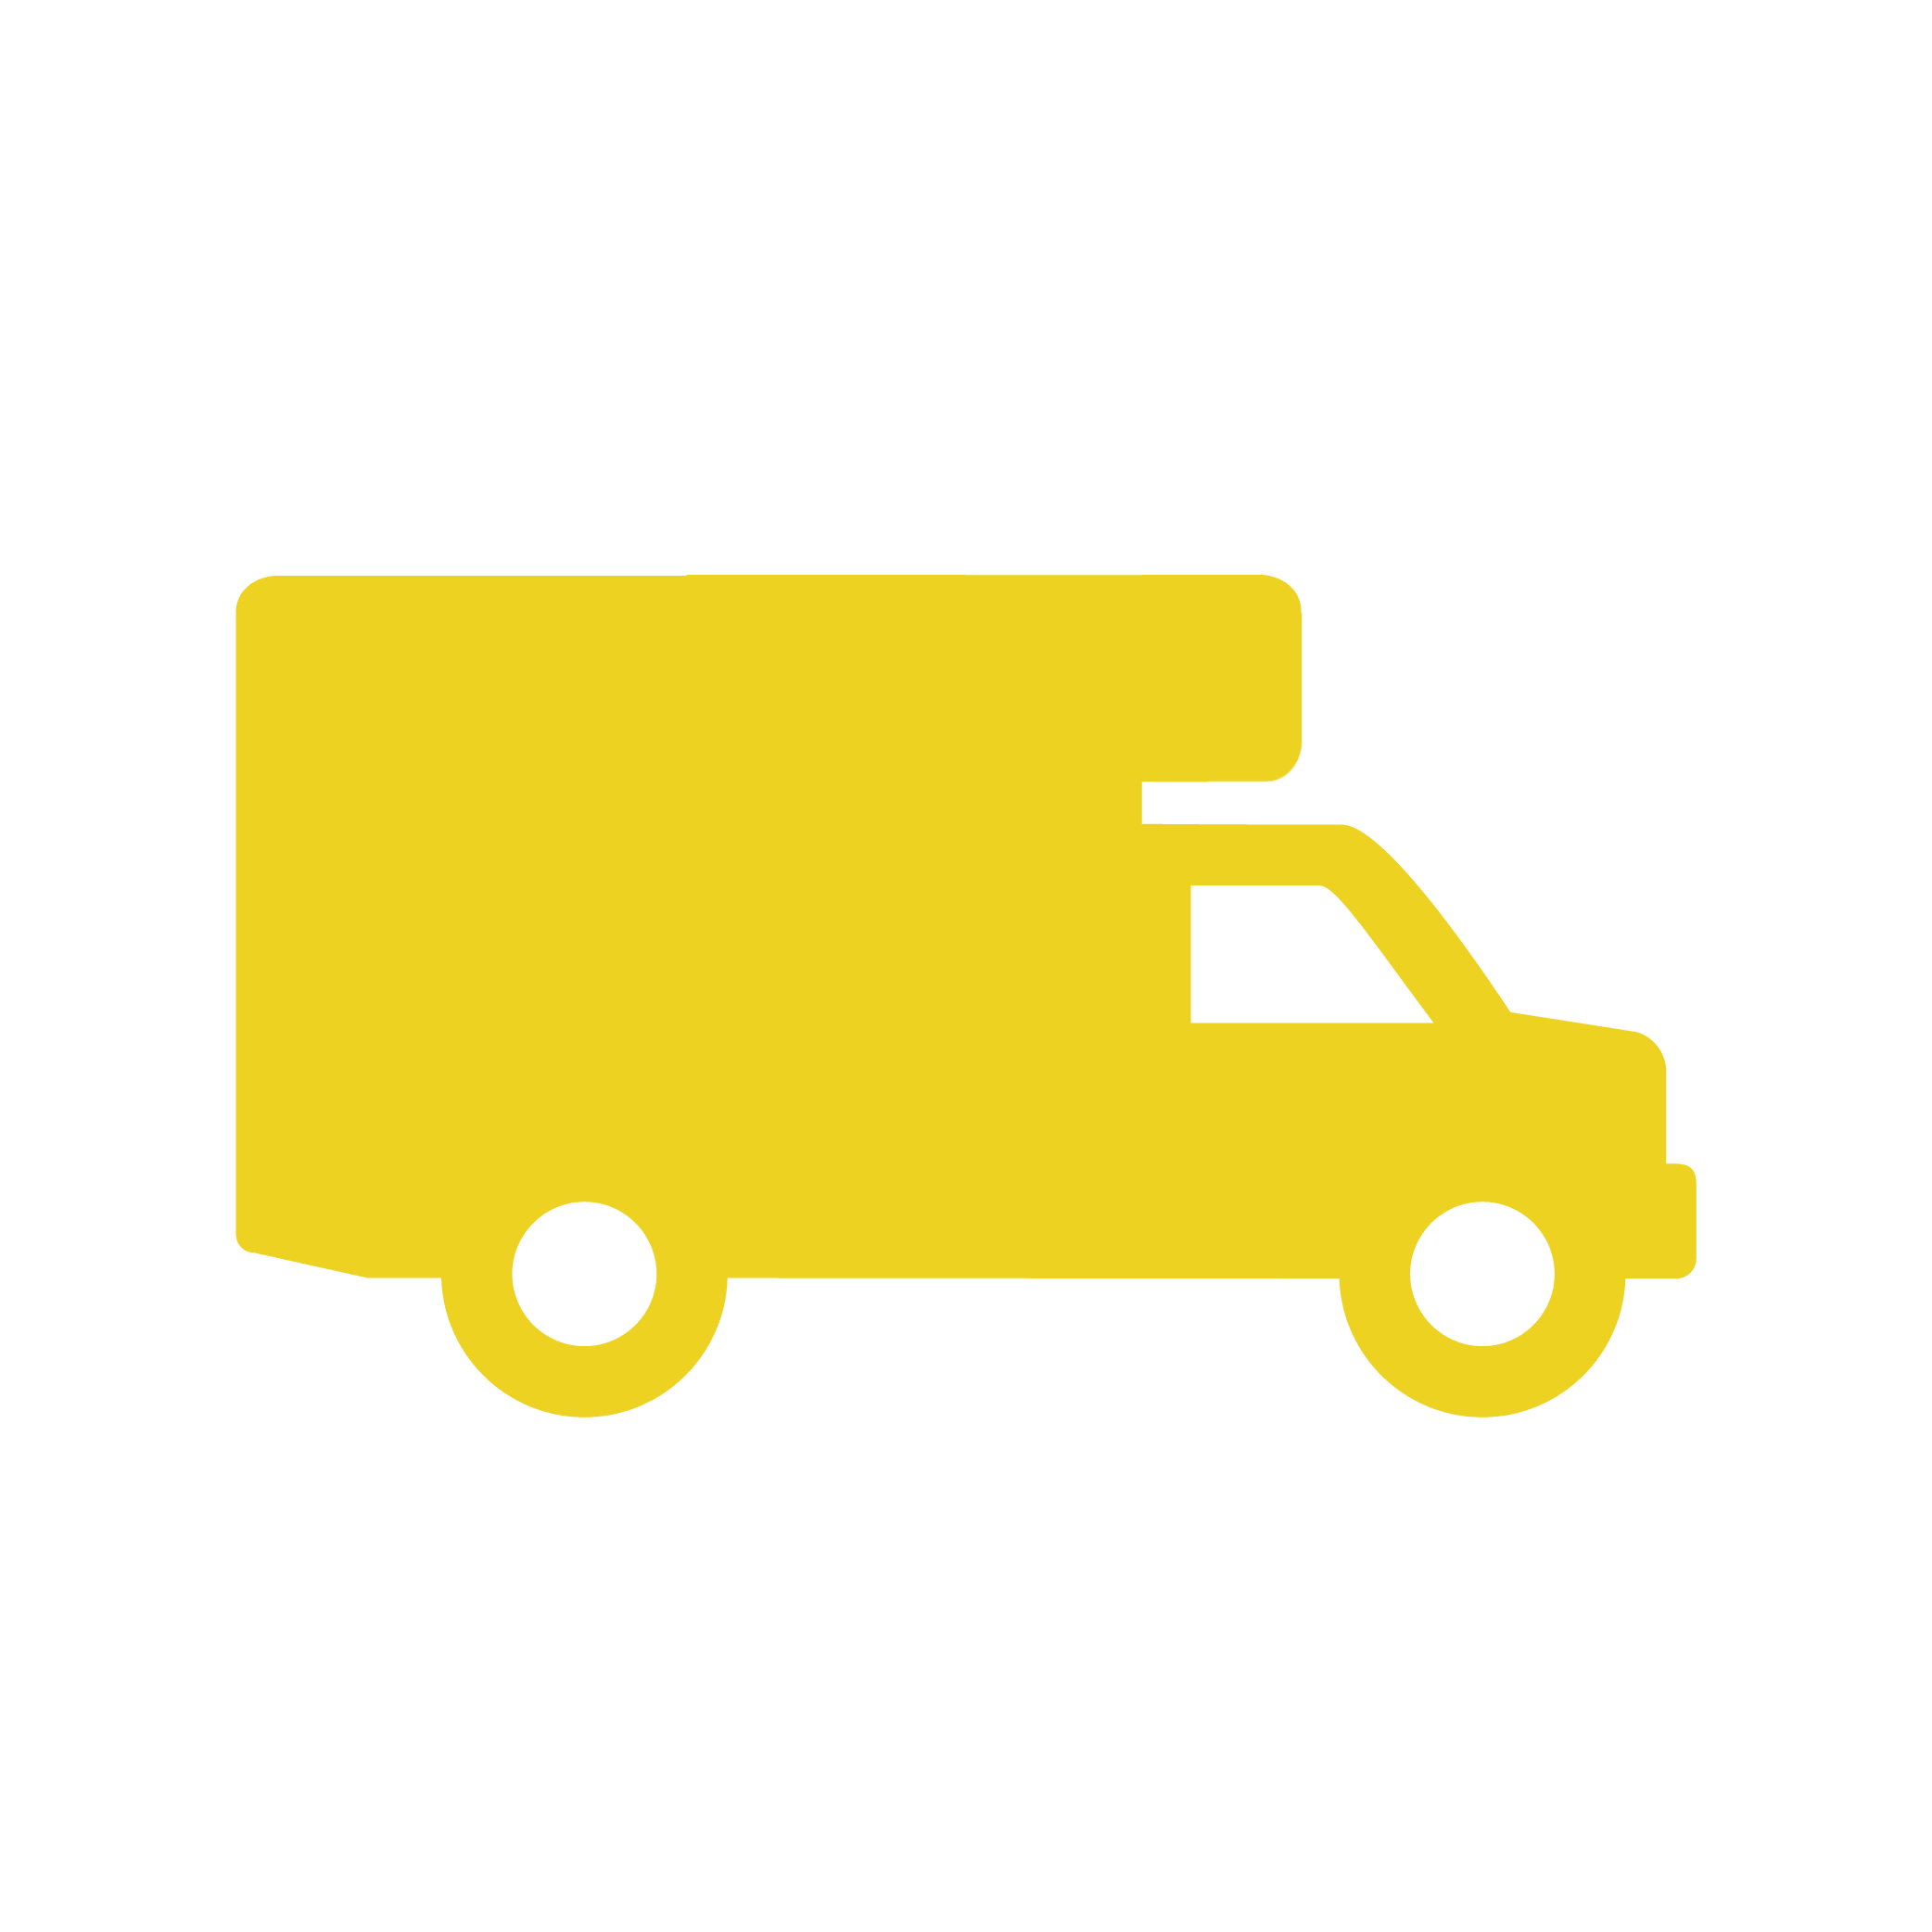 Moving truck graphic